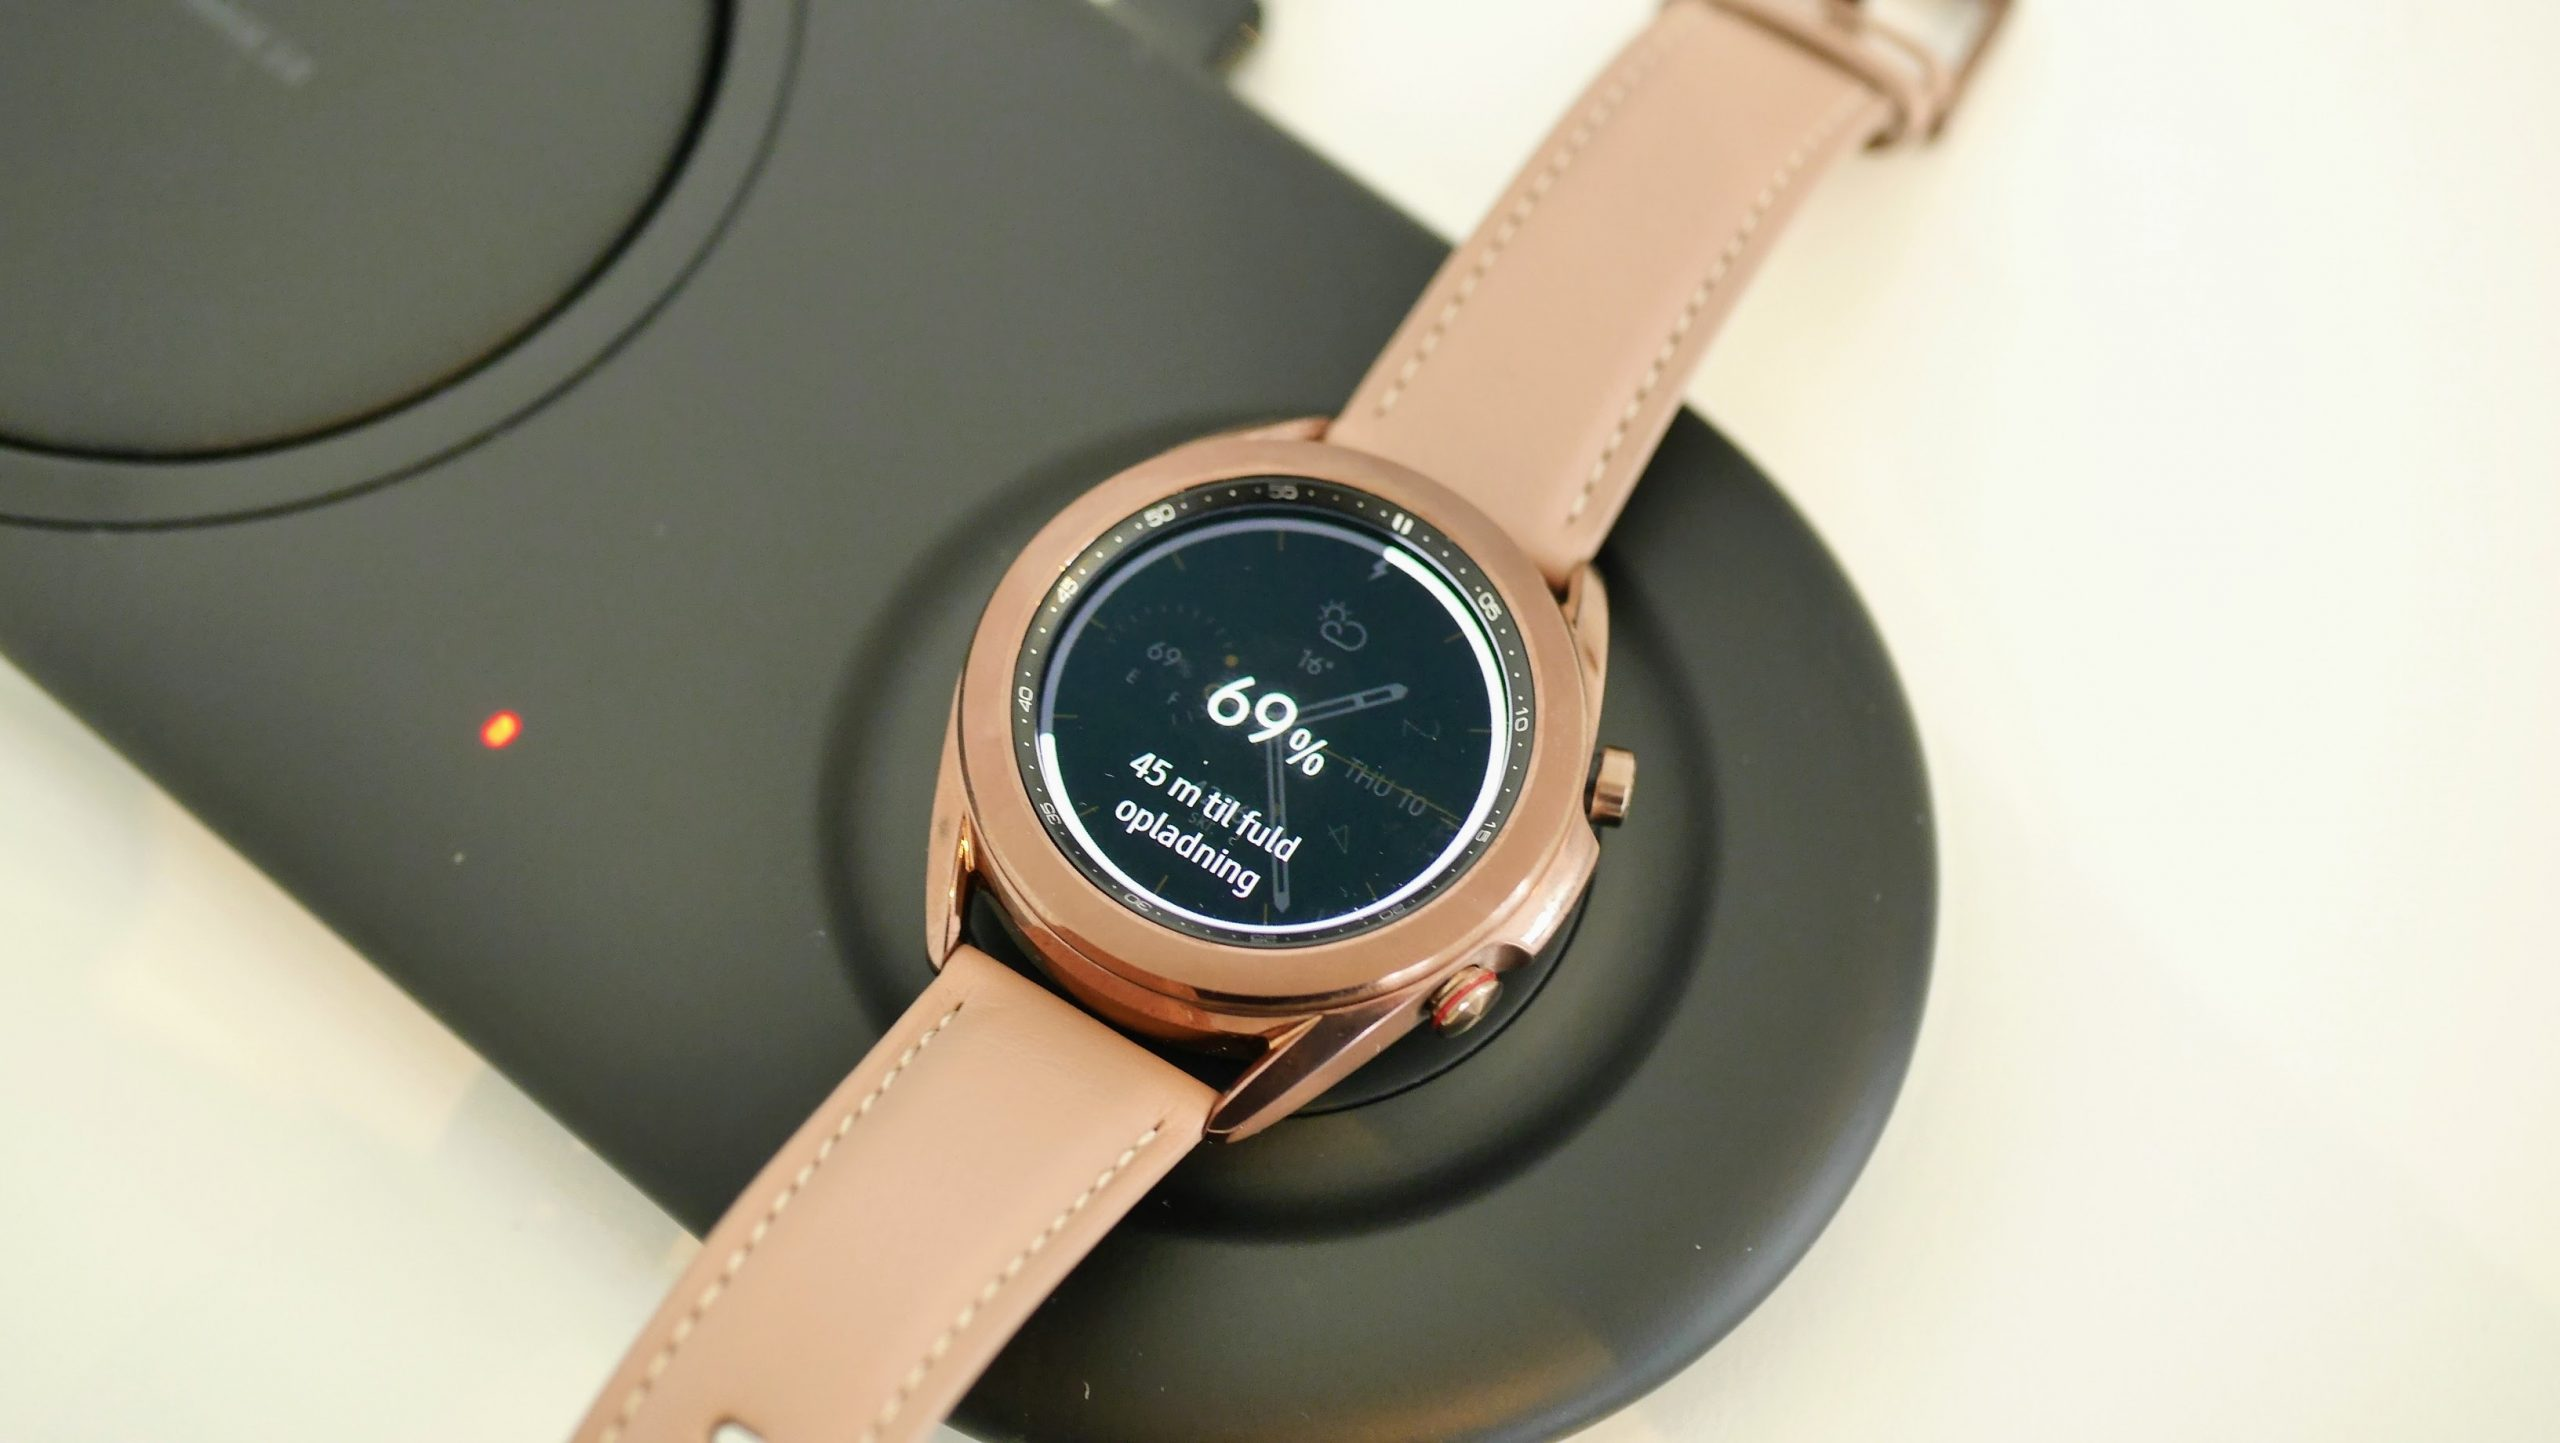 Samsung Galaxy Watch 3 test